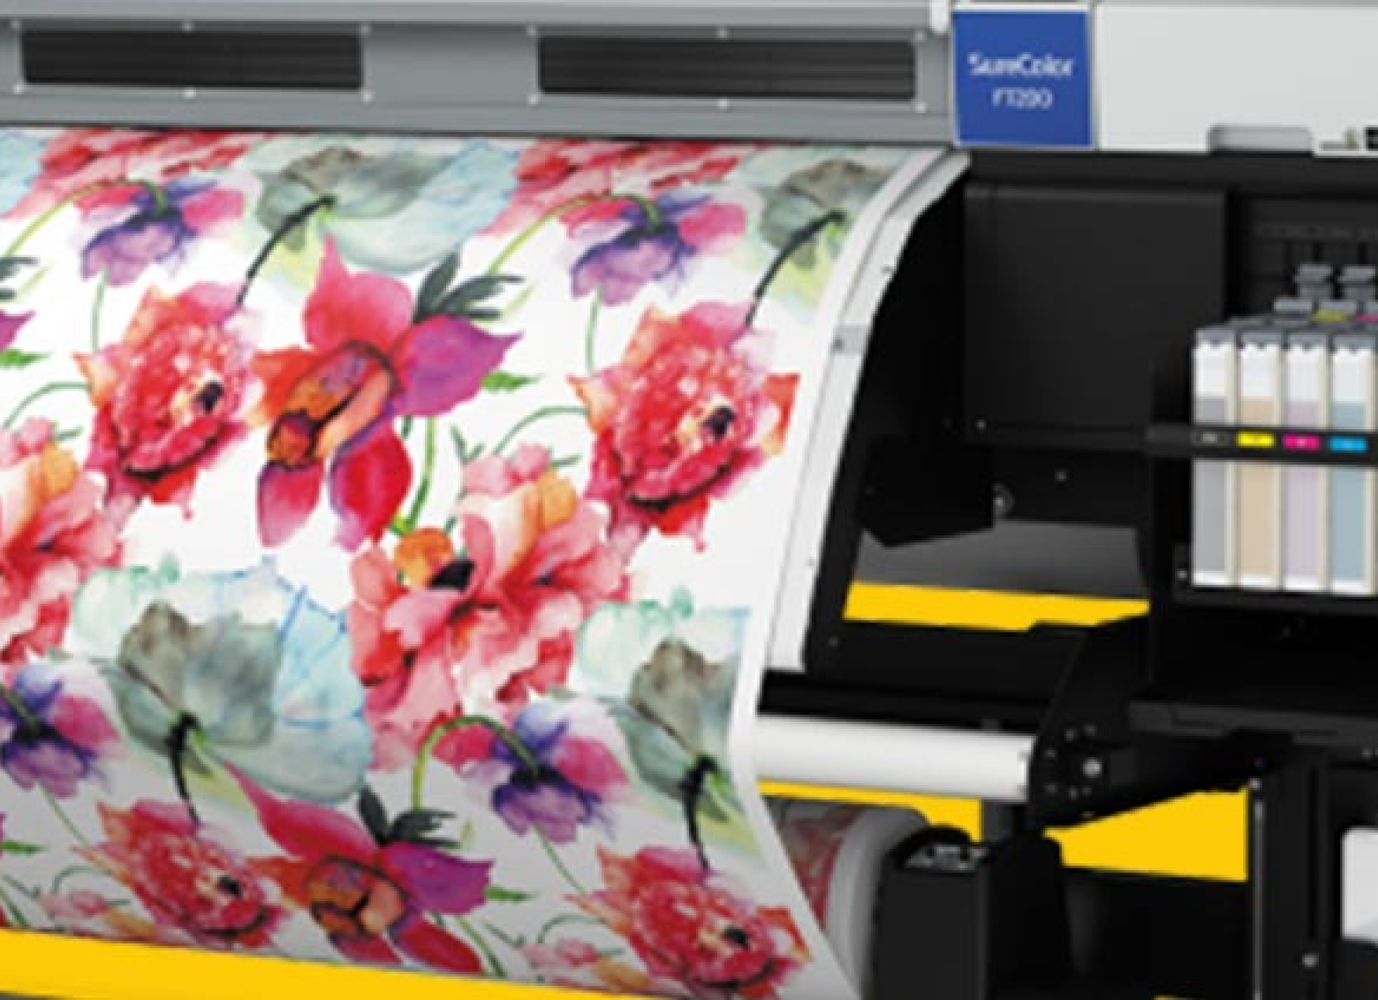 State of the art High-speed Industrial Printer